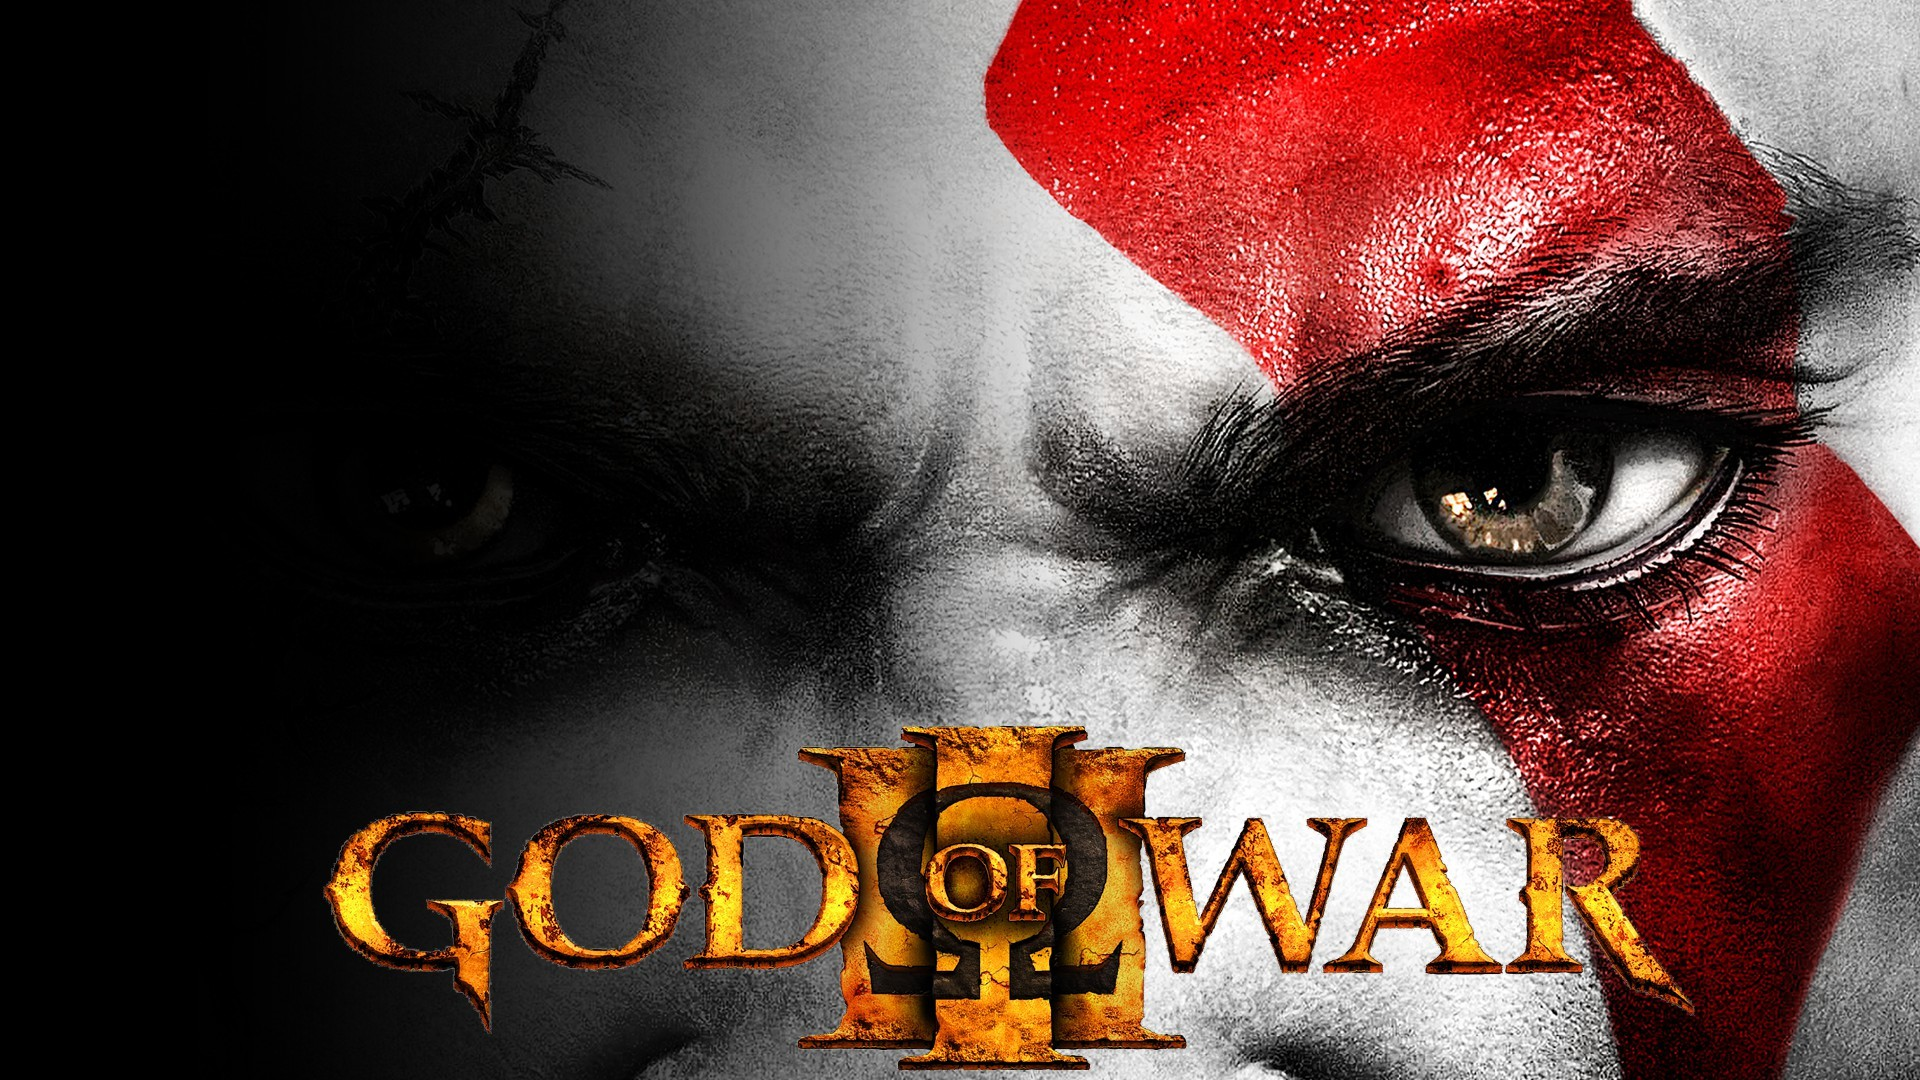 God Of War 3 Wallpapers: Find best latest God Of War 3 Wallpapers in HD